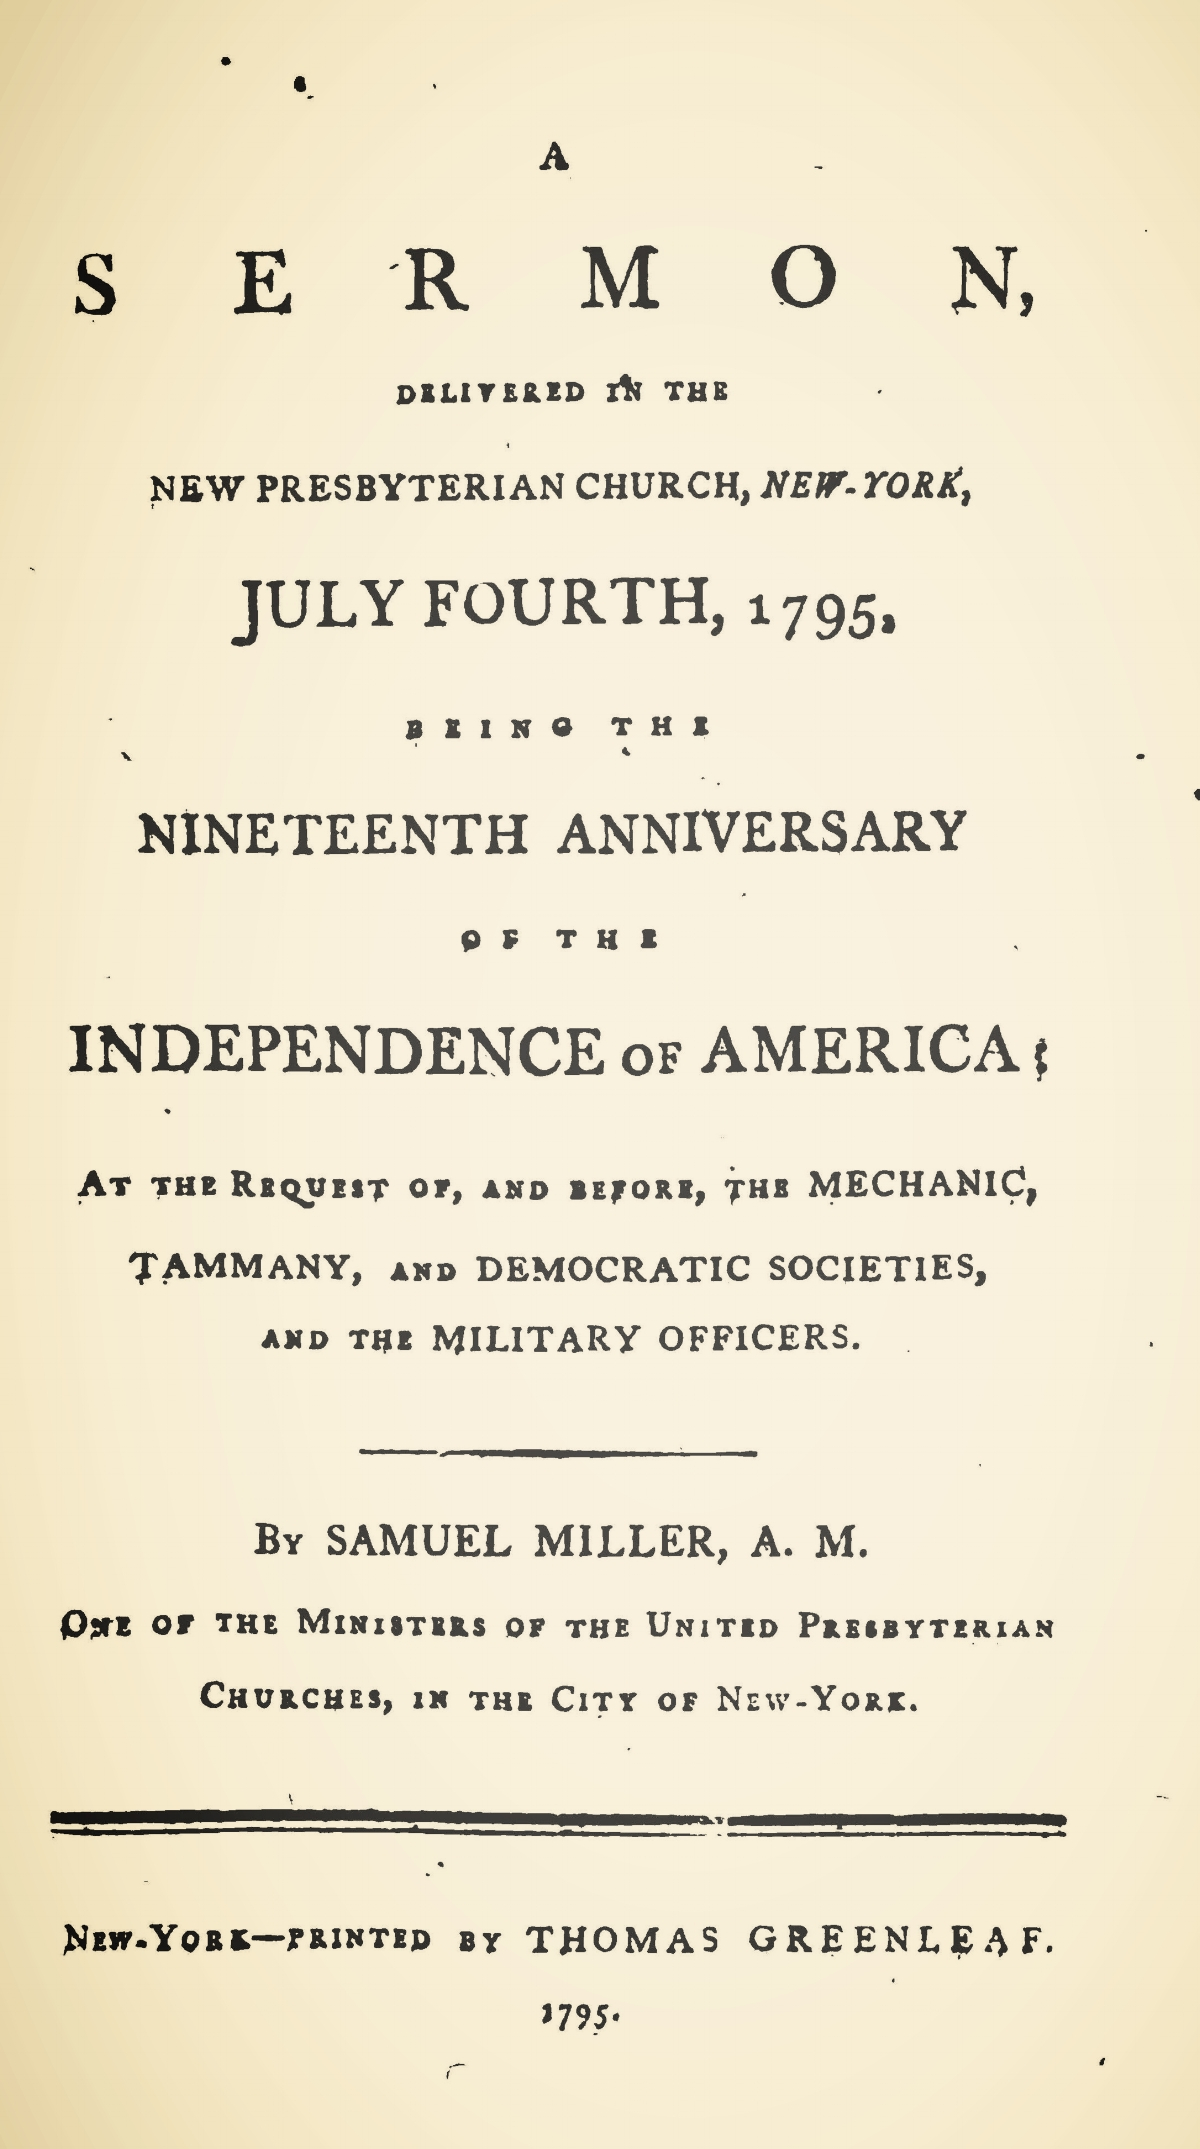 Miller, Samuel, A Sermon Delivered on the Nineteenth Anniversary of the Independence of America Title Page.jpg